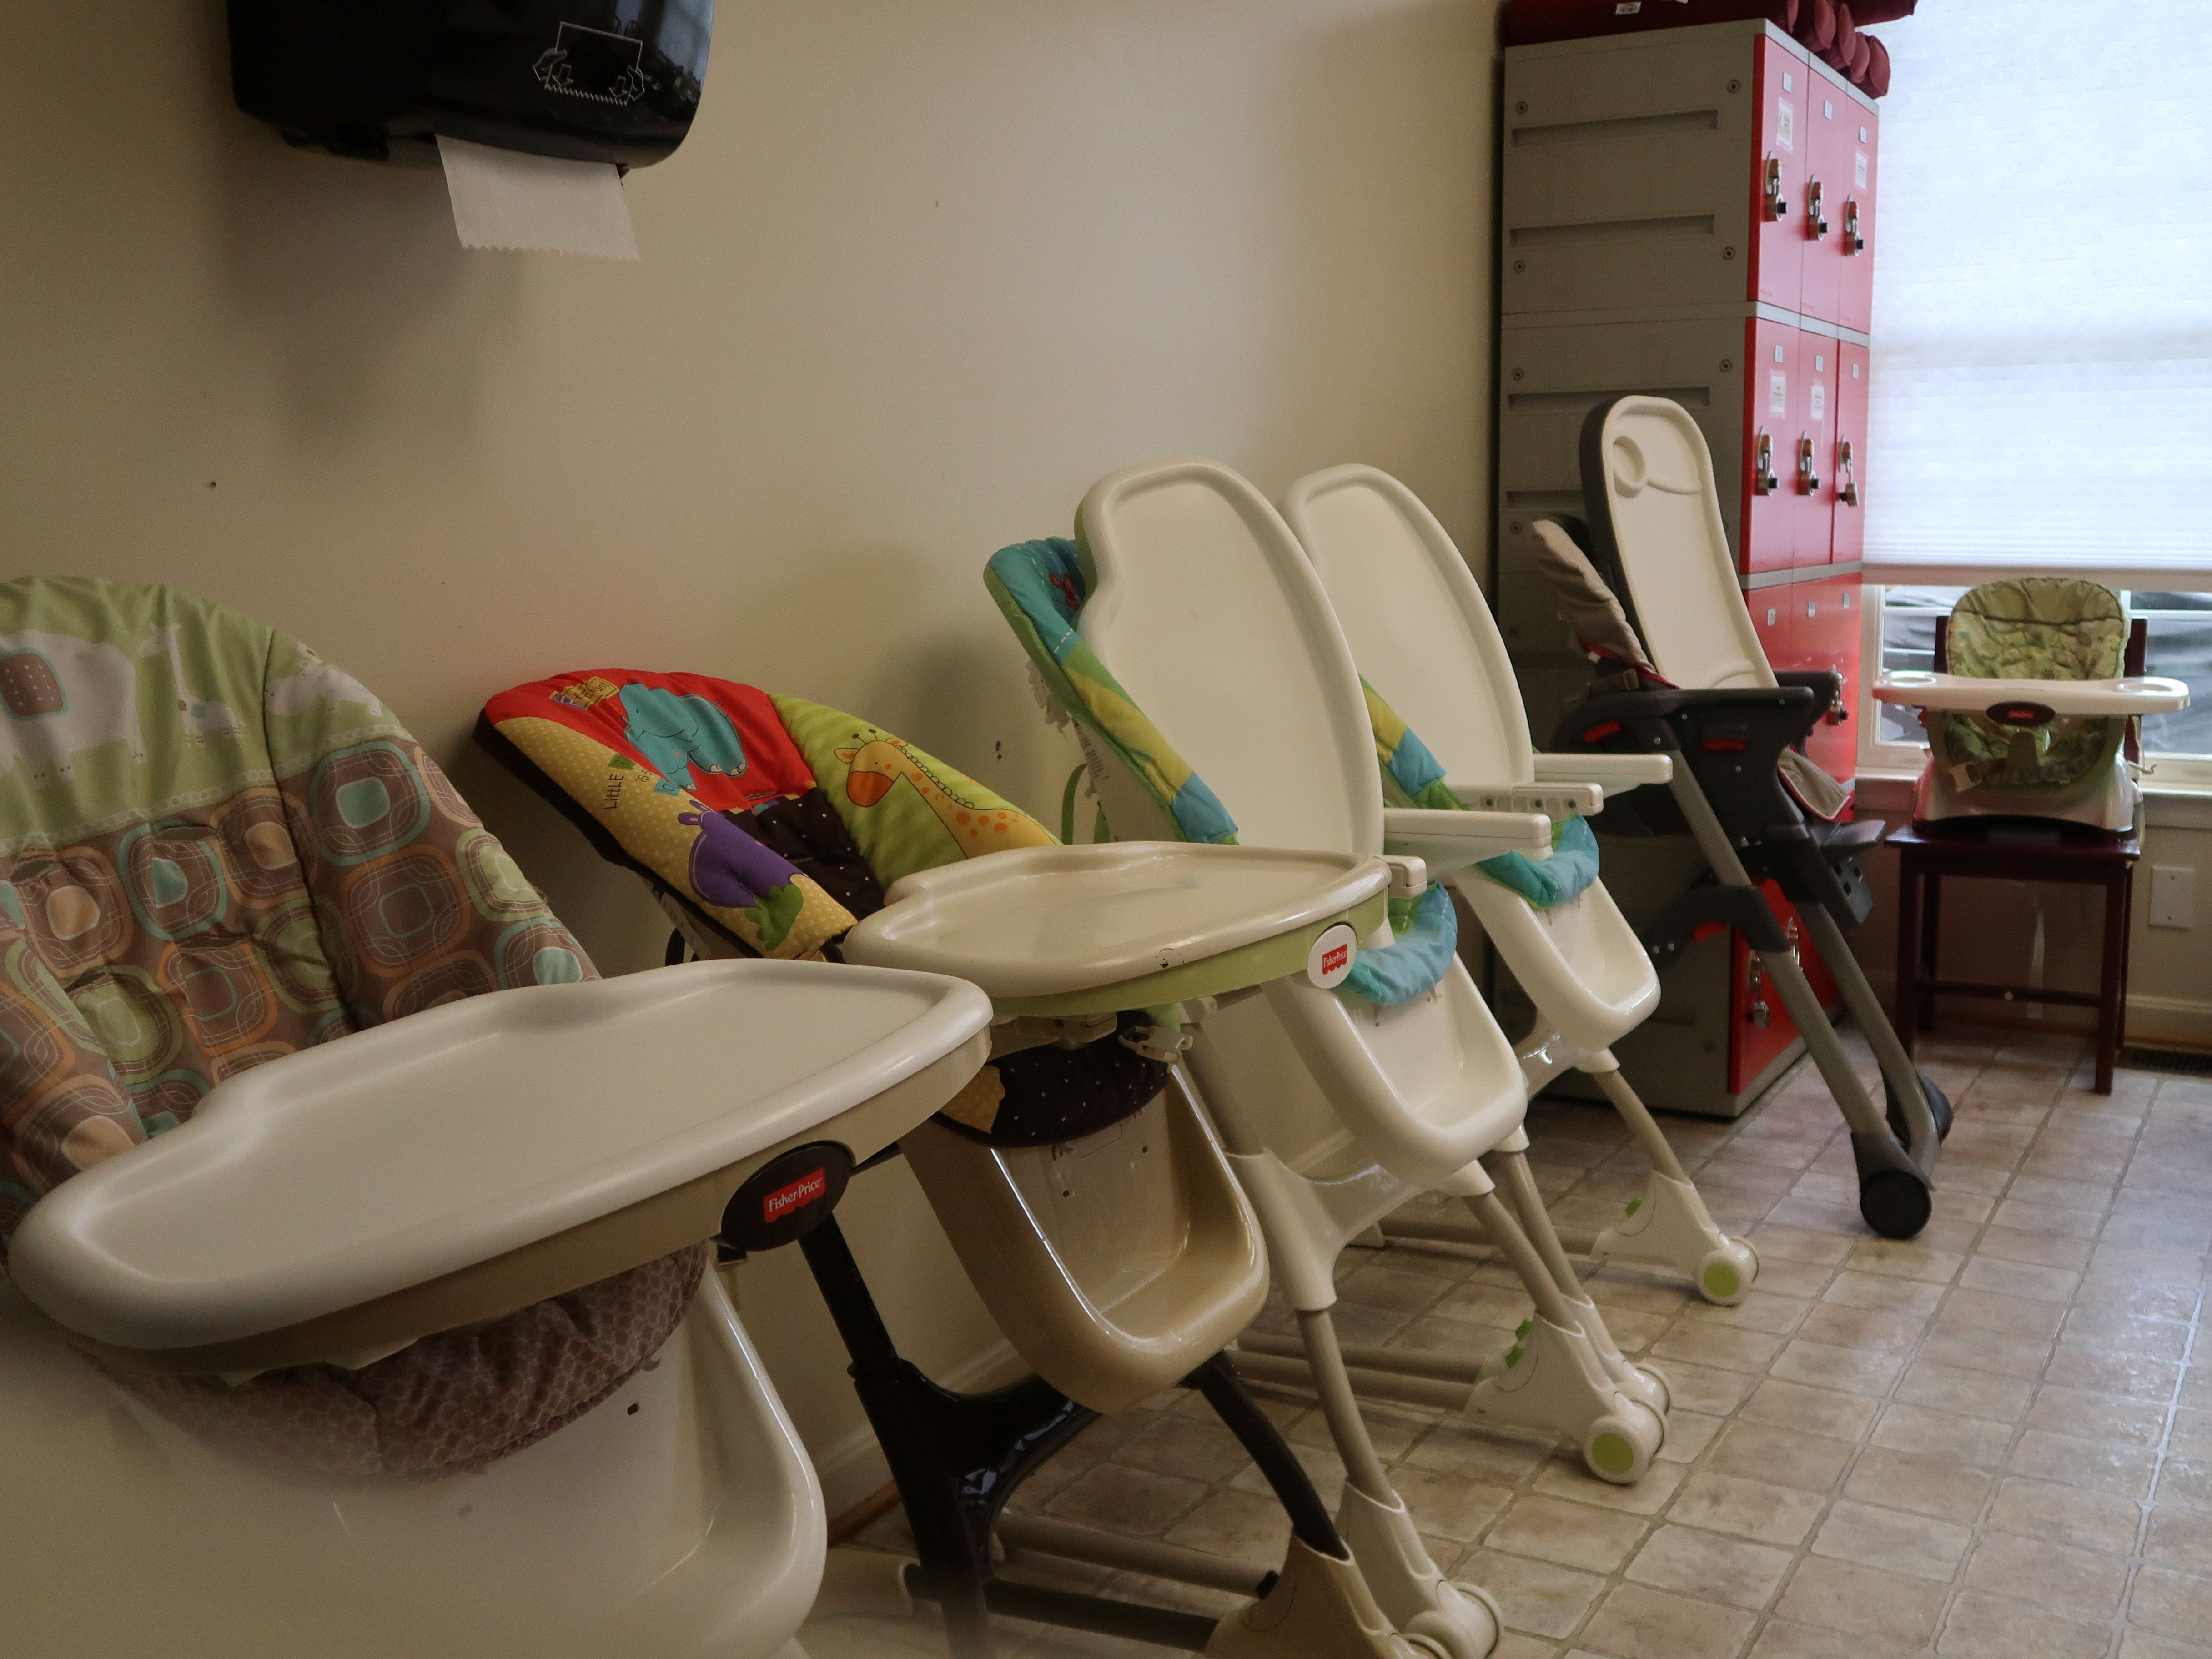 Baby and toddler high chairs are seen at the Bristow facility, in this photo provided by the U.S. Department of Health and Human Services, in Bristow, Virgina, U.S., June 21, 2018.  The shelter is one of numerous facilities housing children and youths which are funded by the Office of Refugee Resettlement.    HHS/Handout via REUTERS   ATTENTION EDITORS - THIS IMAGE WAS PROVIDED BY A THIRD PARTY.